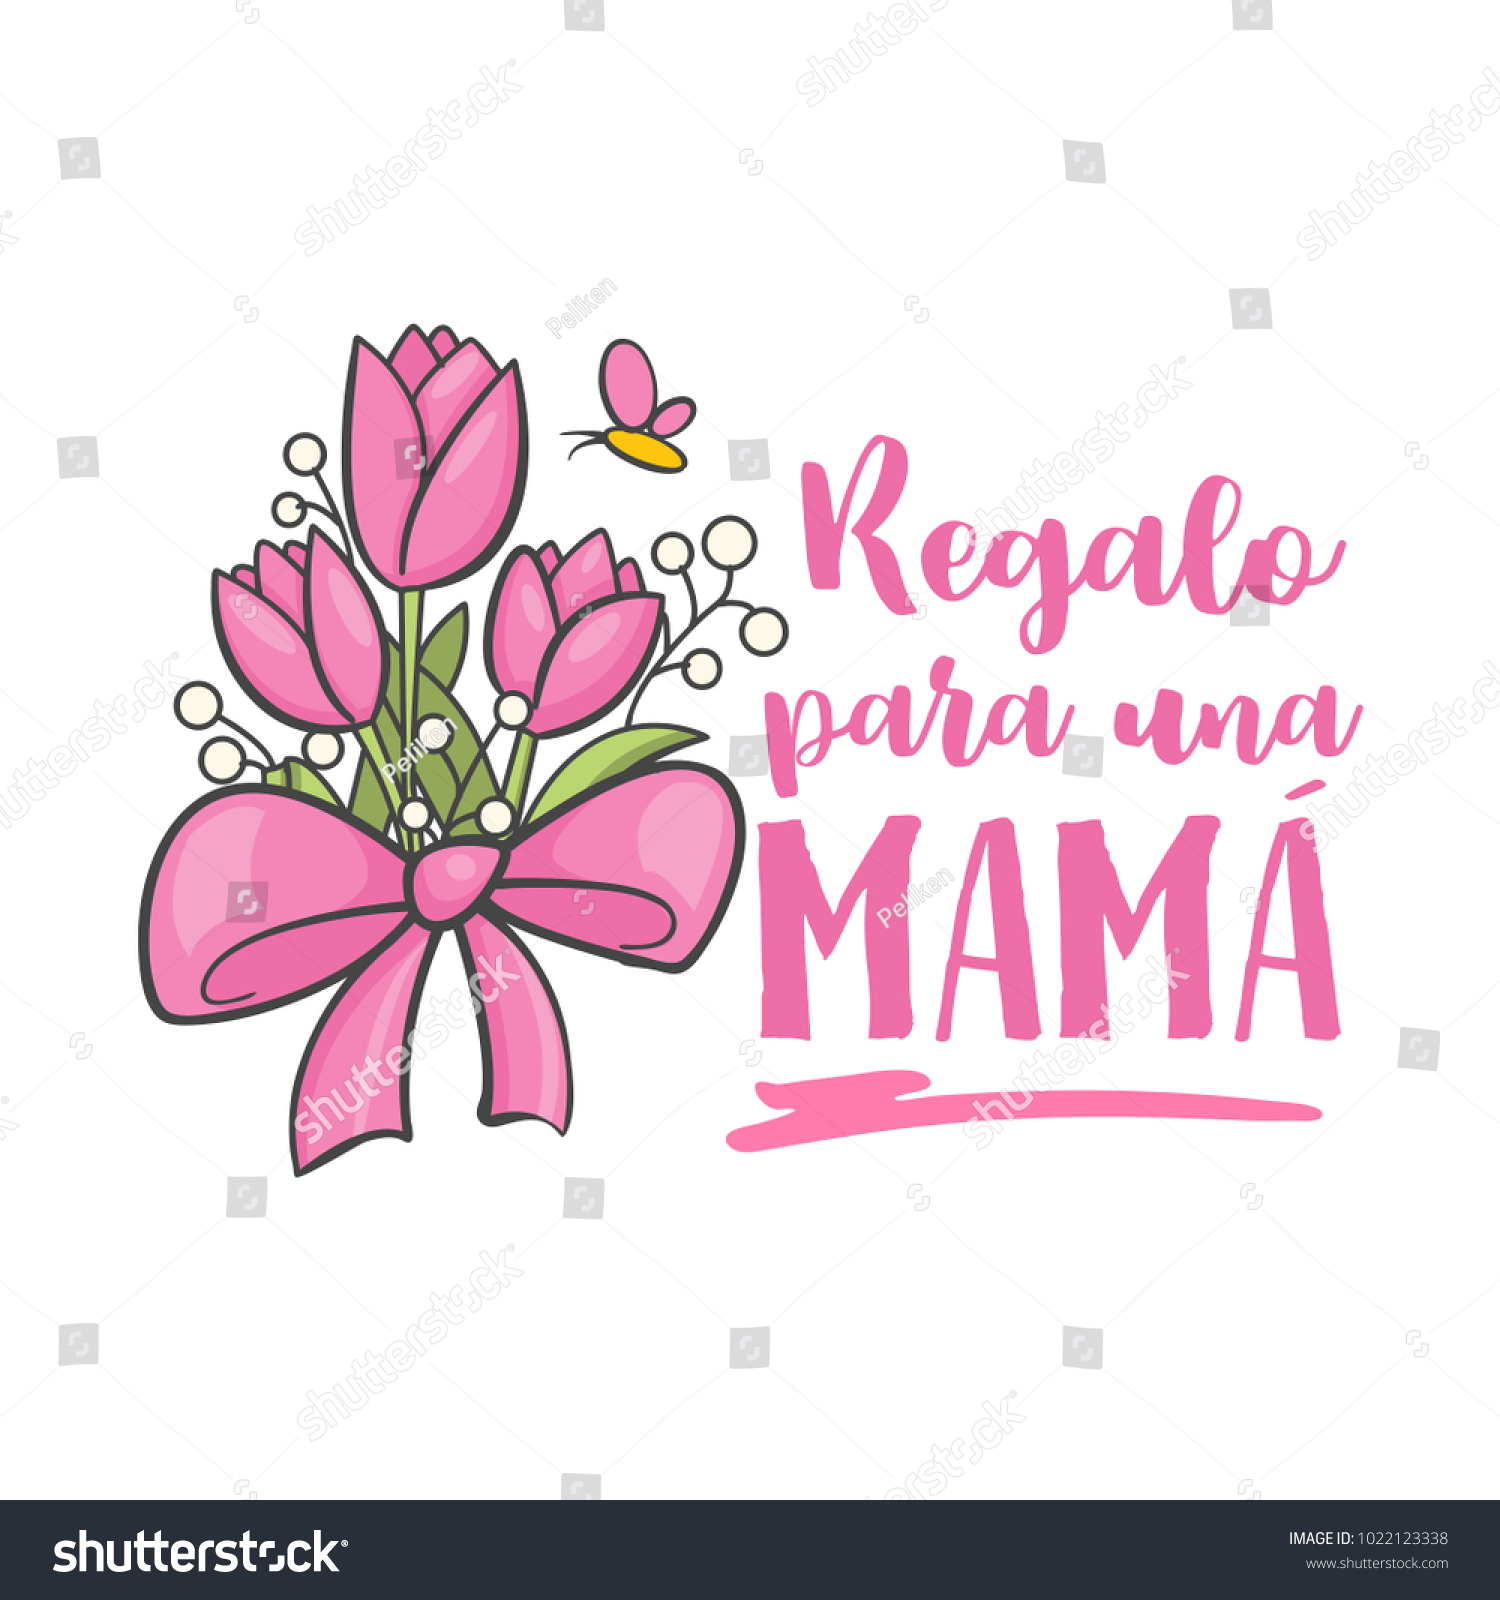 Gift Mom Spanish Mother Day Greeting Stock Vector Royalty Free